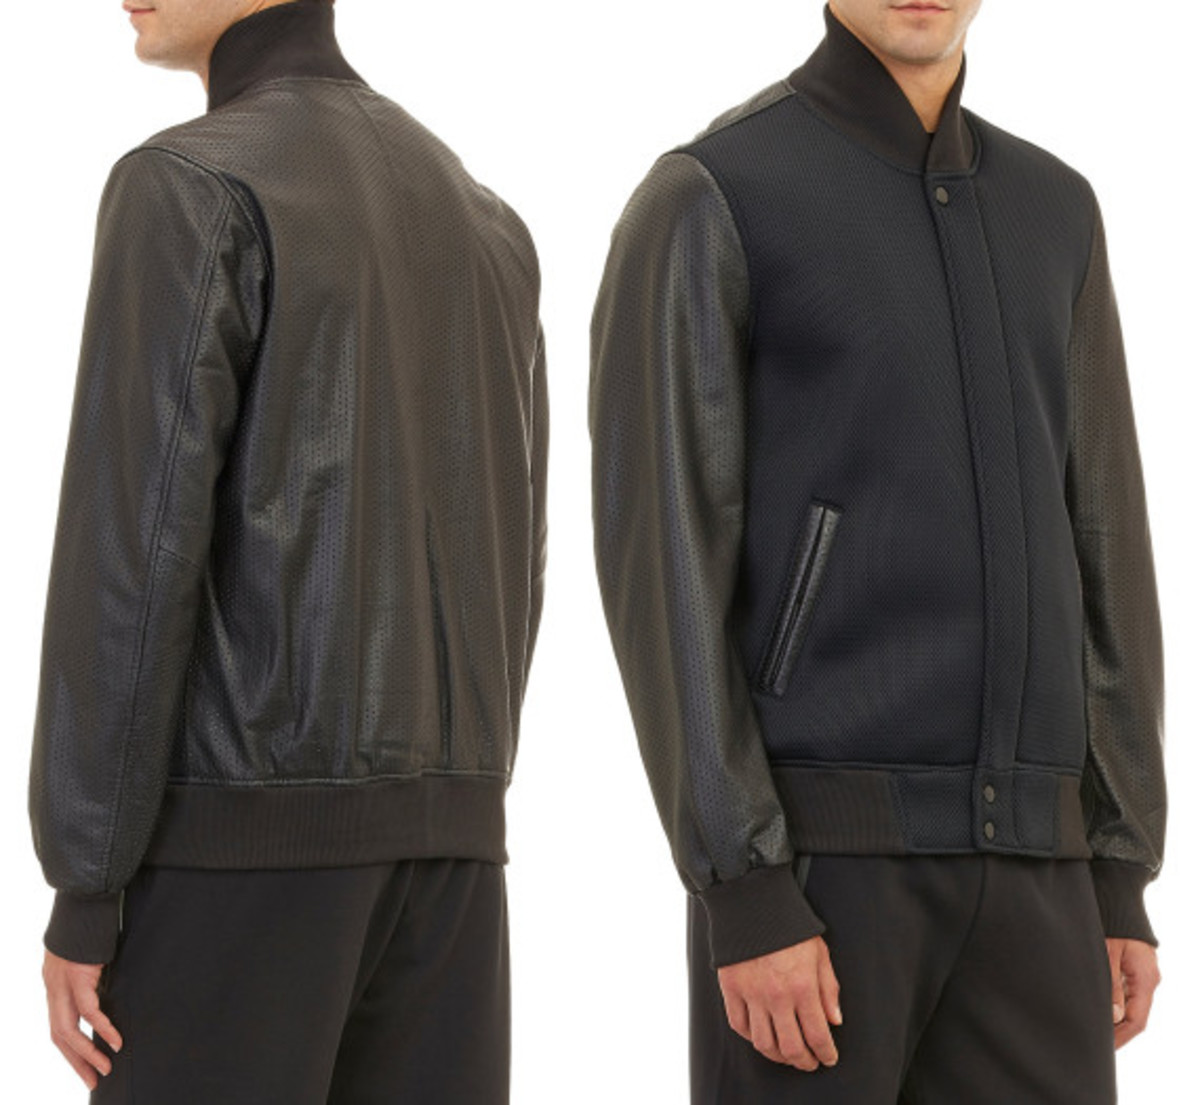 Jordan Brand x Russell Westbrook for Barneys New York - Neoprene & Leather Varsity Jacket - 0